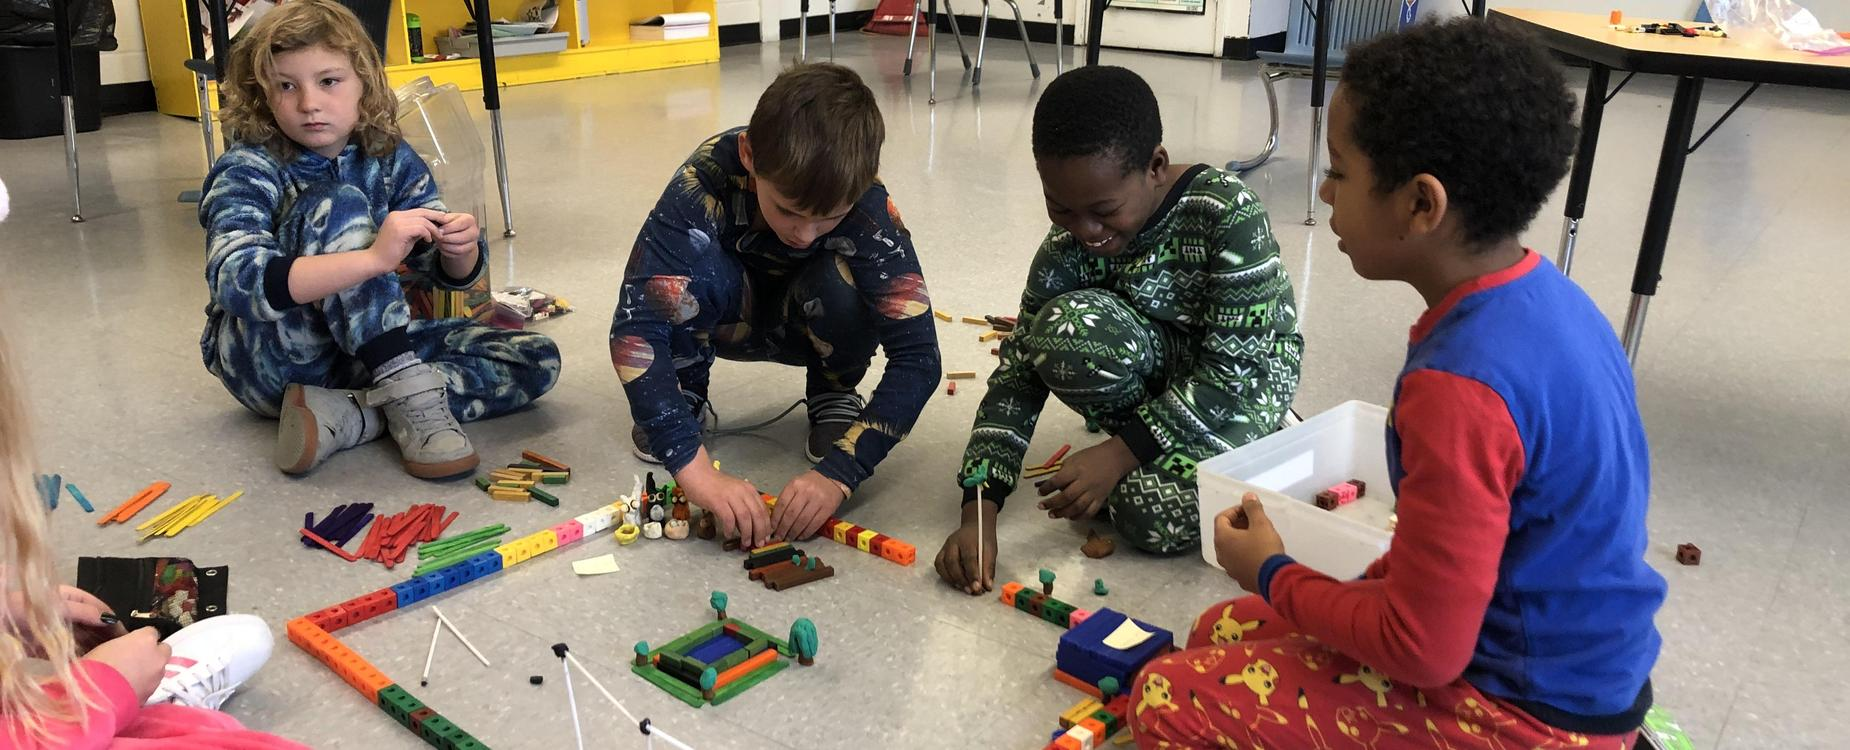 Students are in their pyjamas for Pyjama Day.  5 students are using colored block to build their idea of a community.